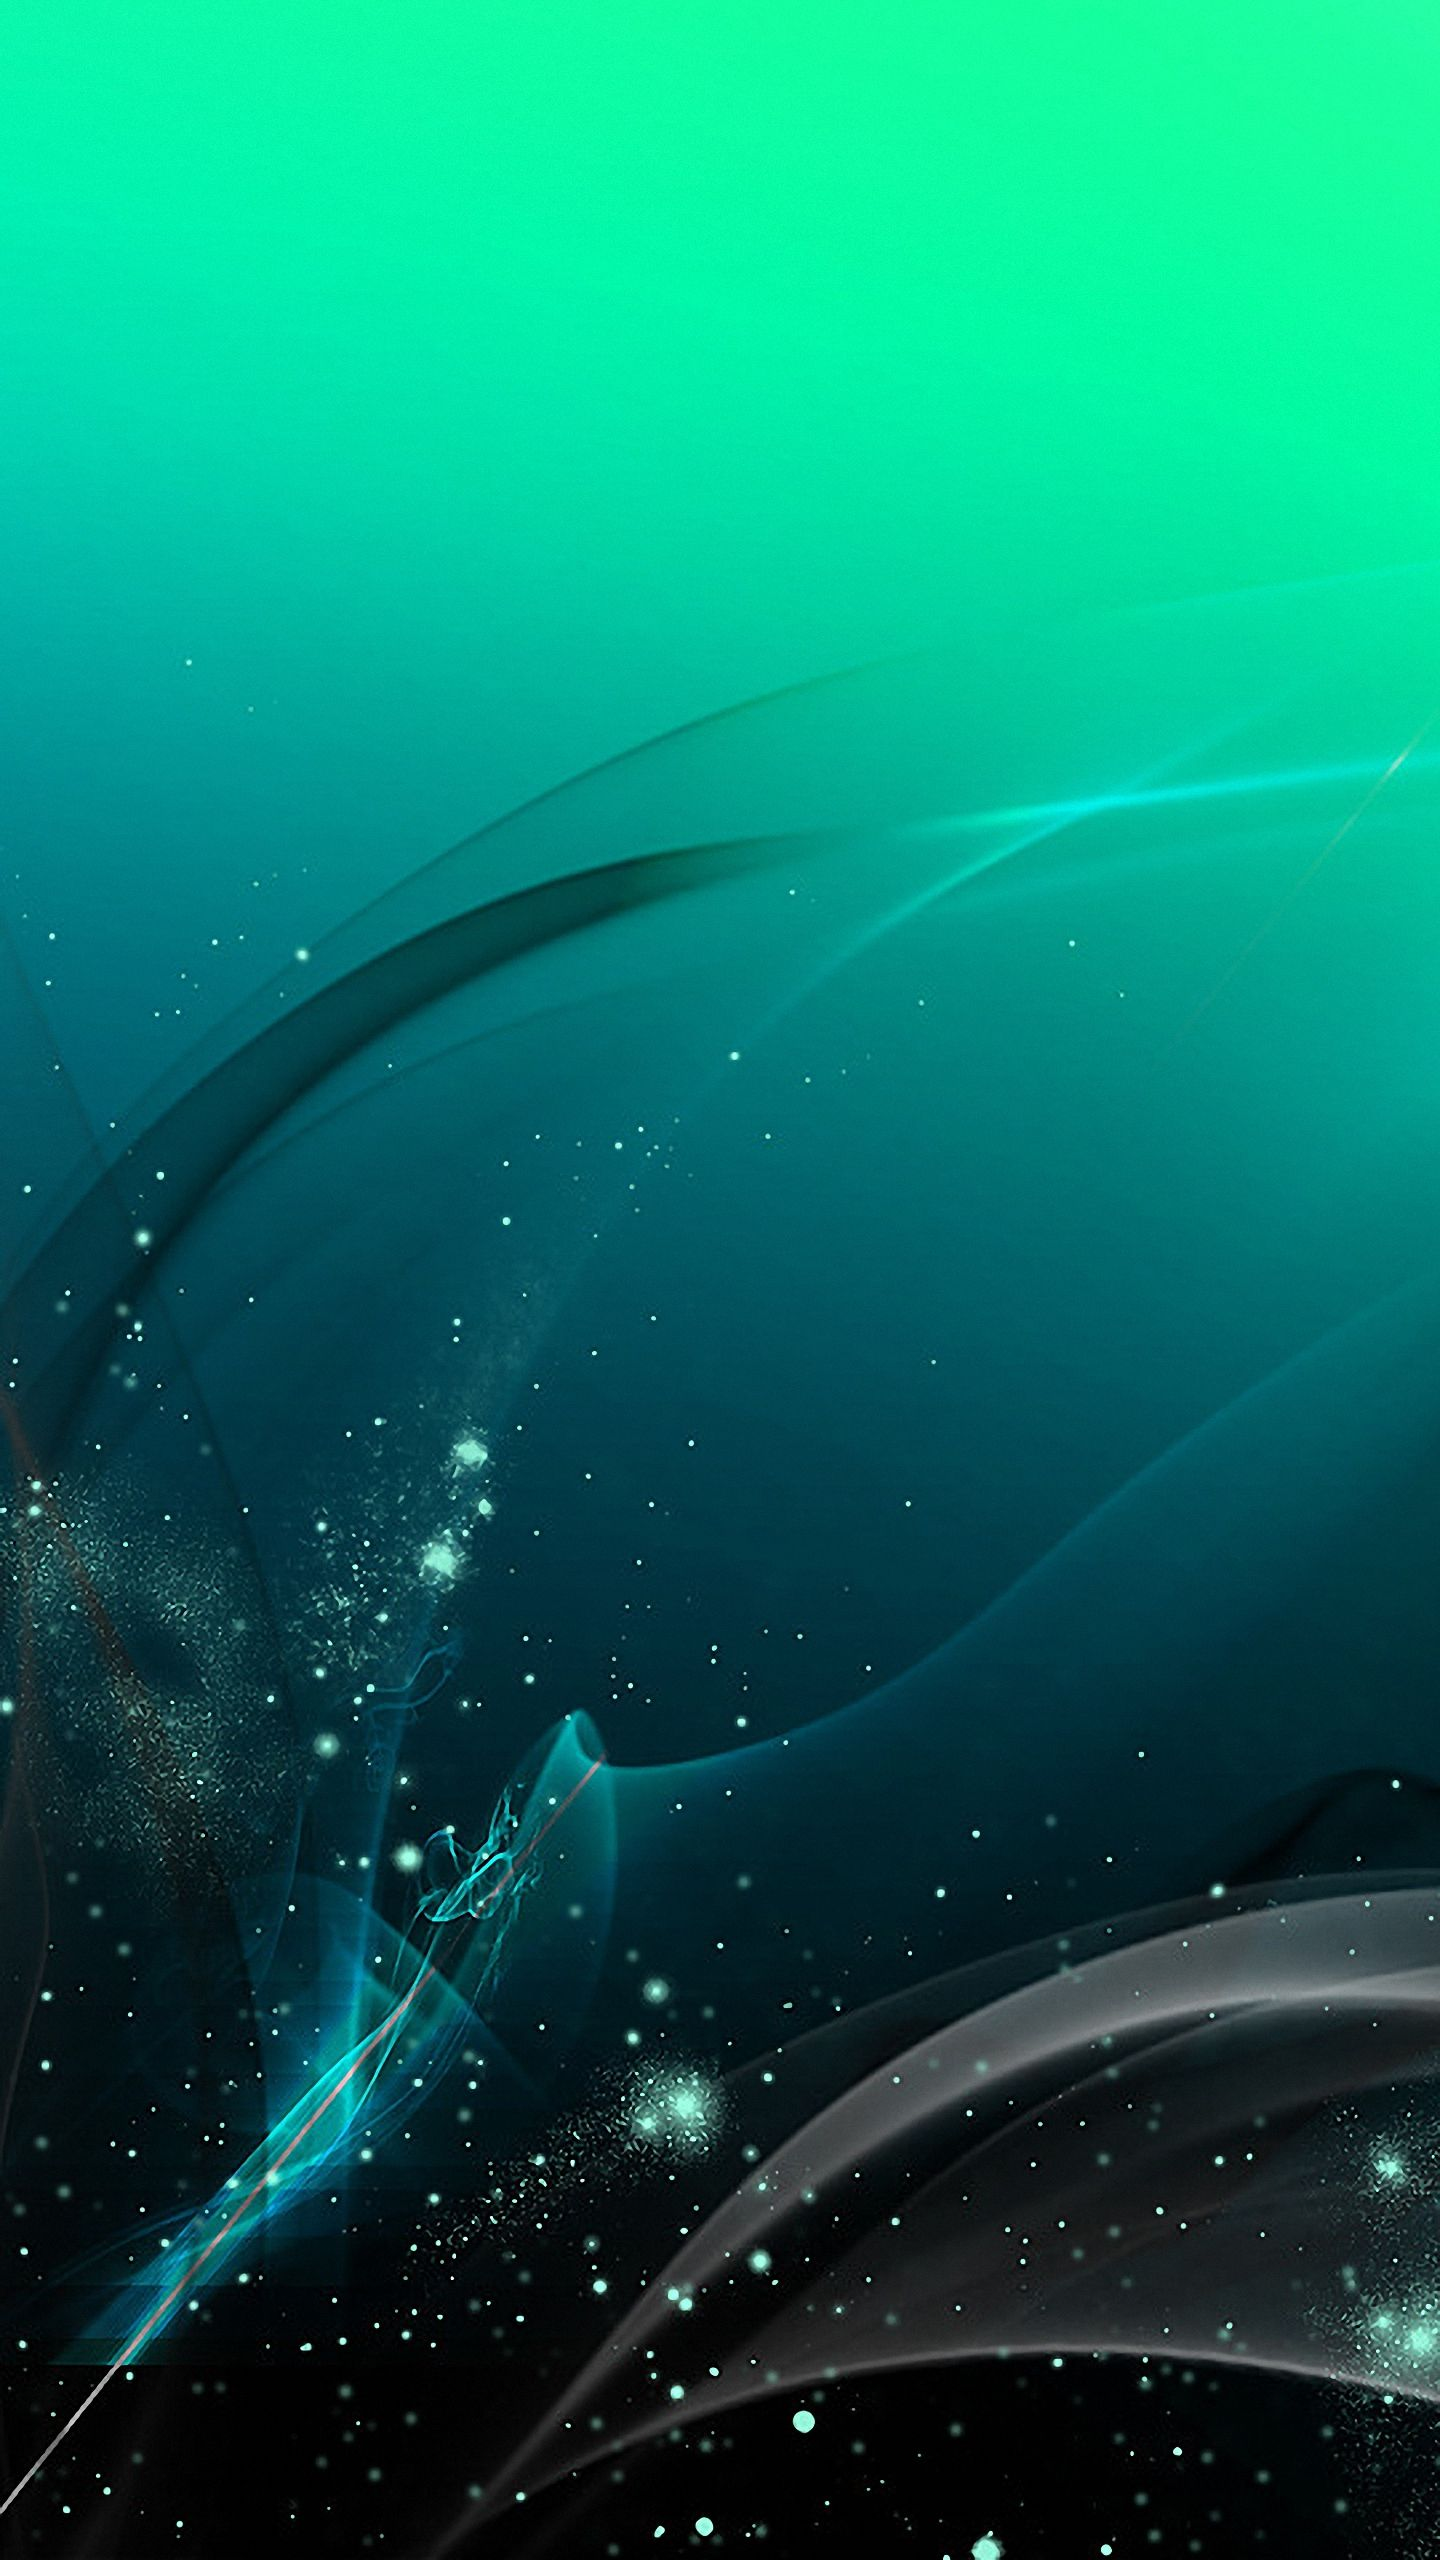 Hd wallpaper note 4 - Abstract Turquoise Samsung Galaxy Note 4 Wallpapers Hd 1440x2560